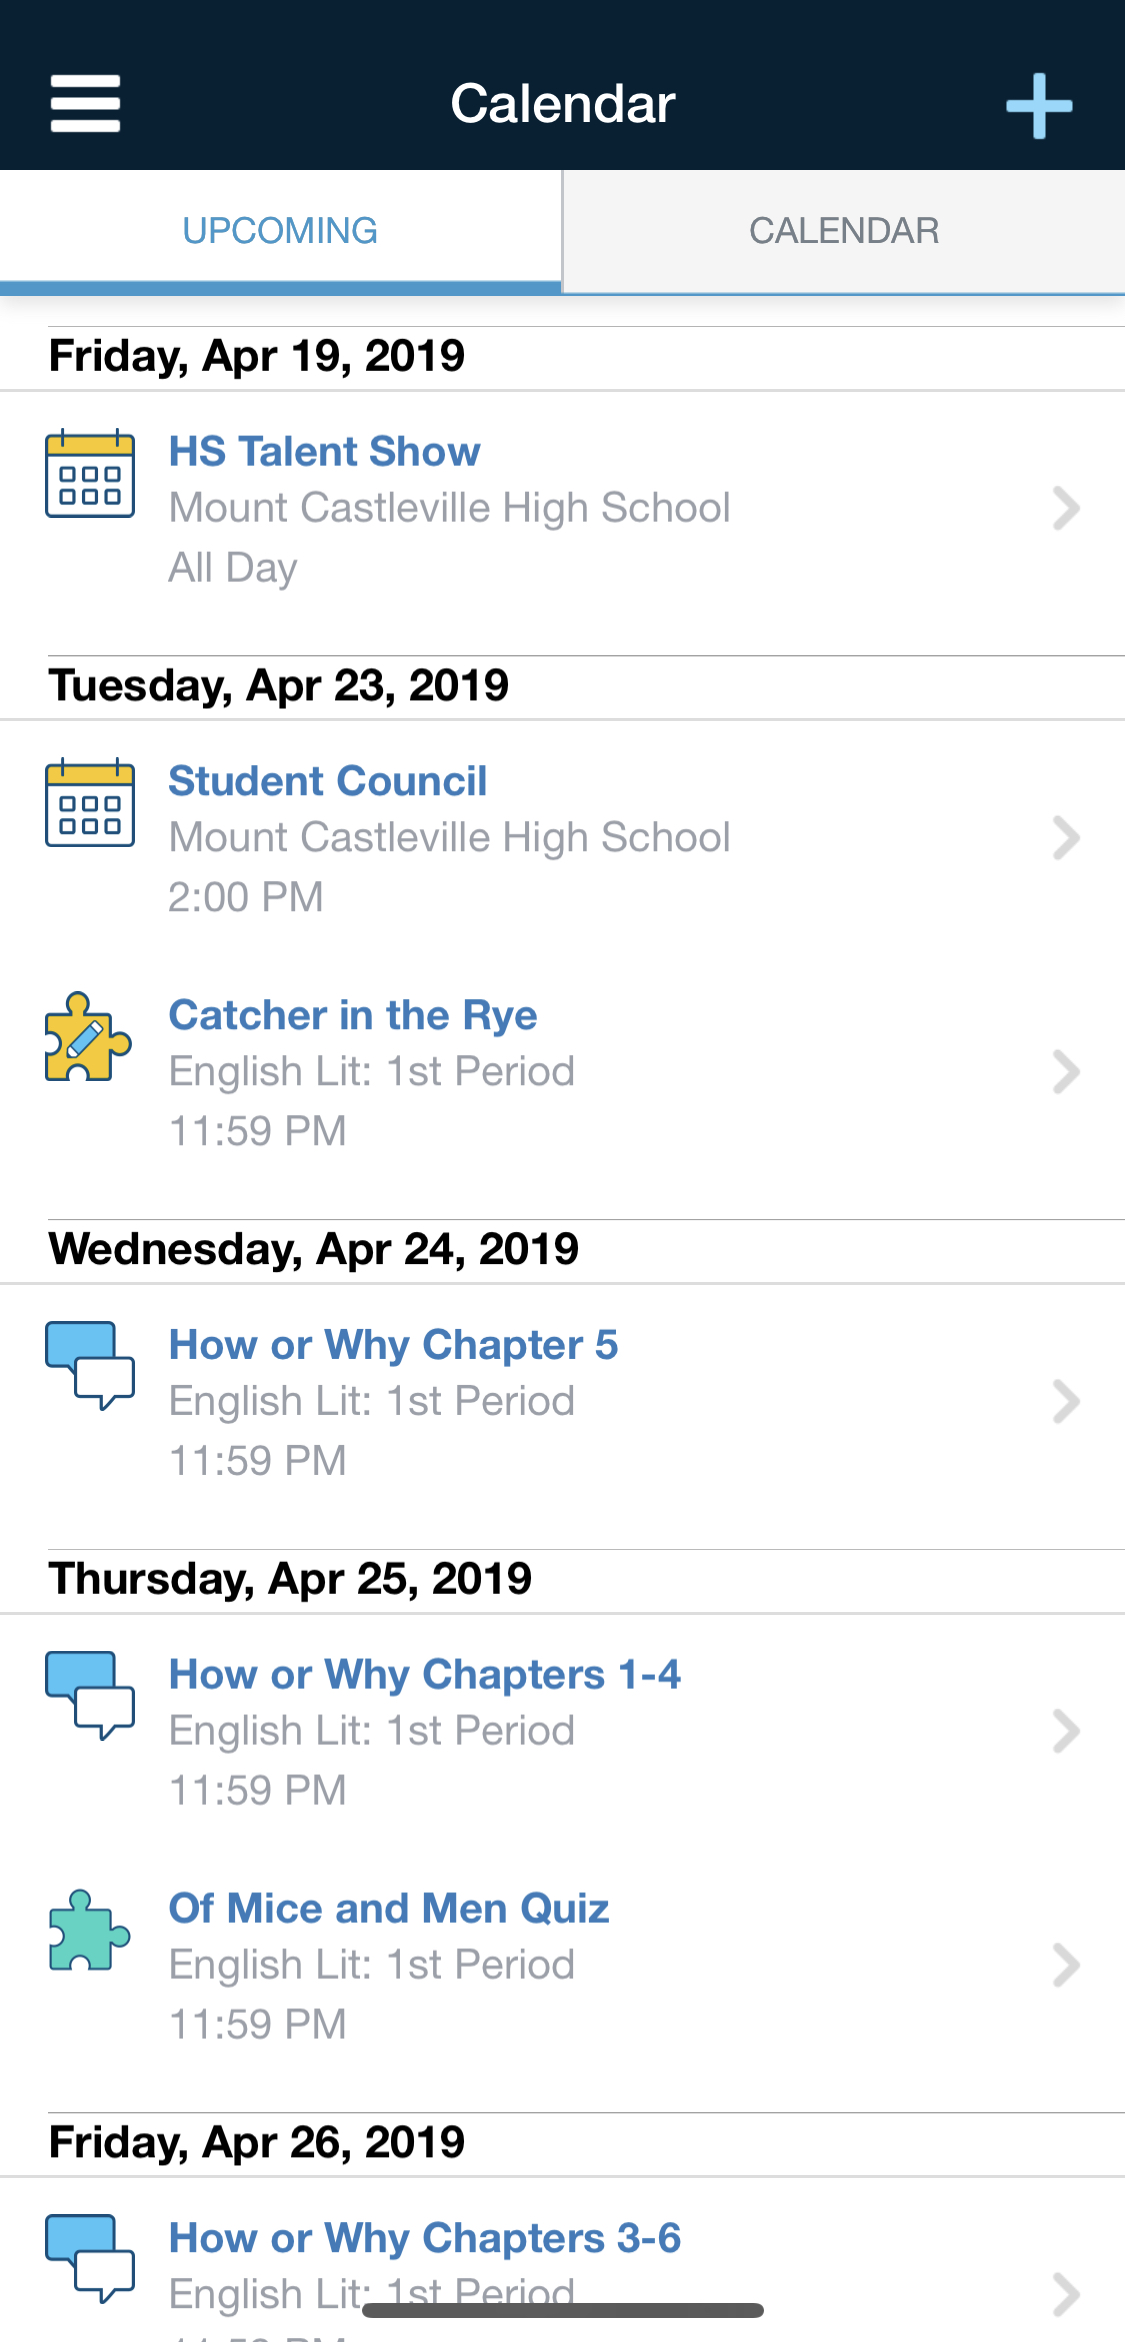 18_iPhoneX_6.7.0_Nav_Menu_Upcoming_Calendar_Student.jpg